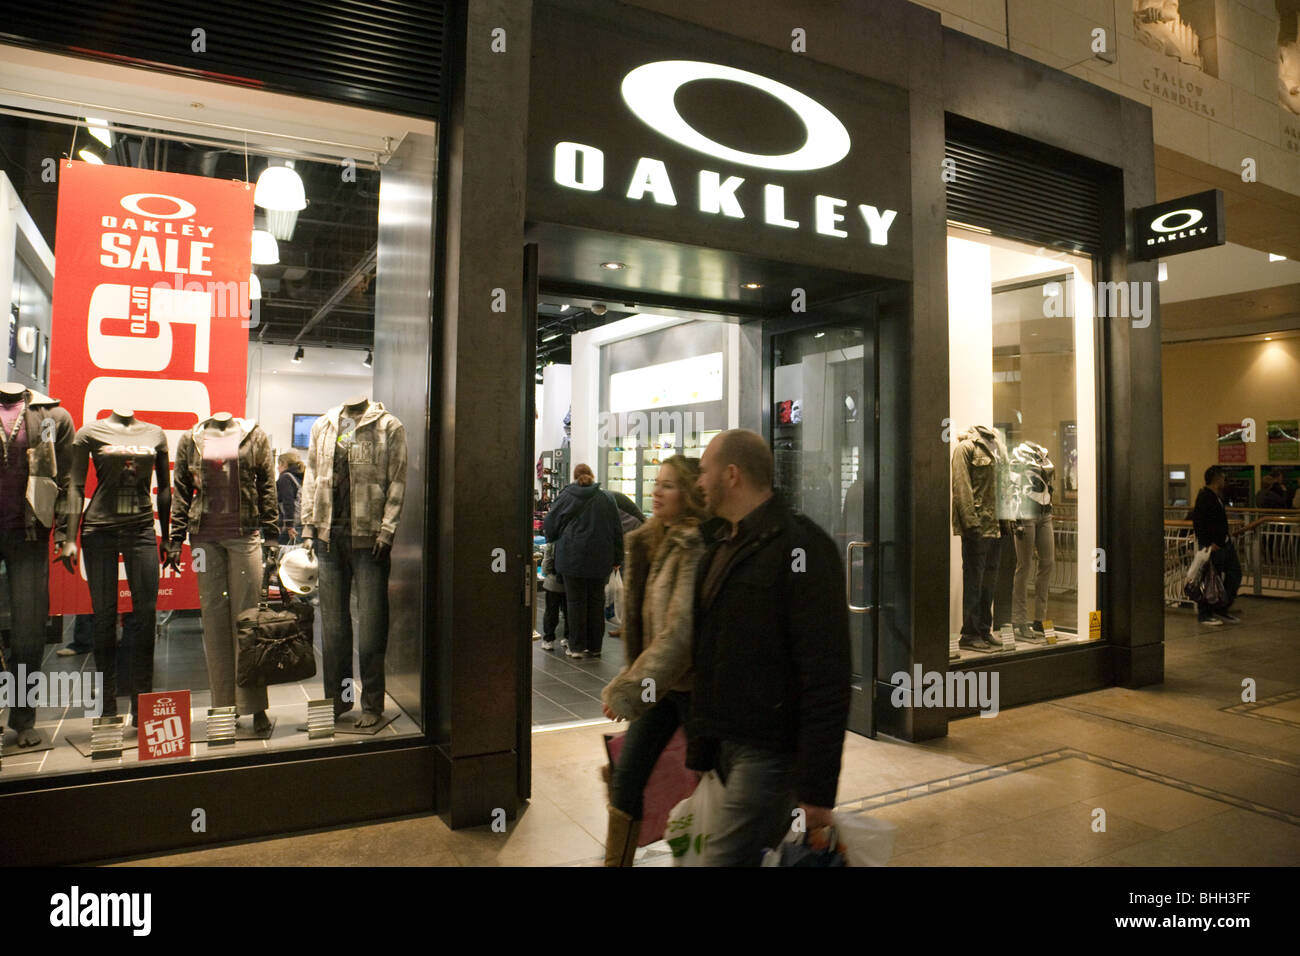 e0a462f5b82 Oakley Shop Stock Photos   Oakley Shop Stock Images - Alamy